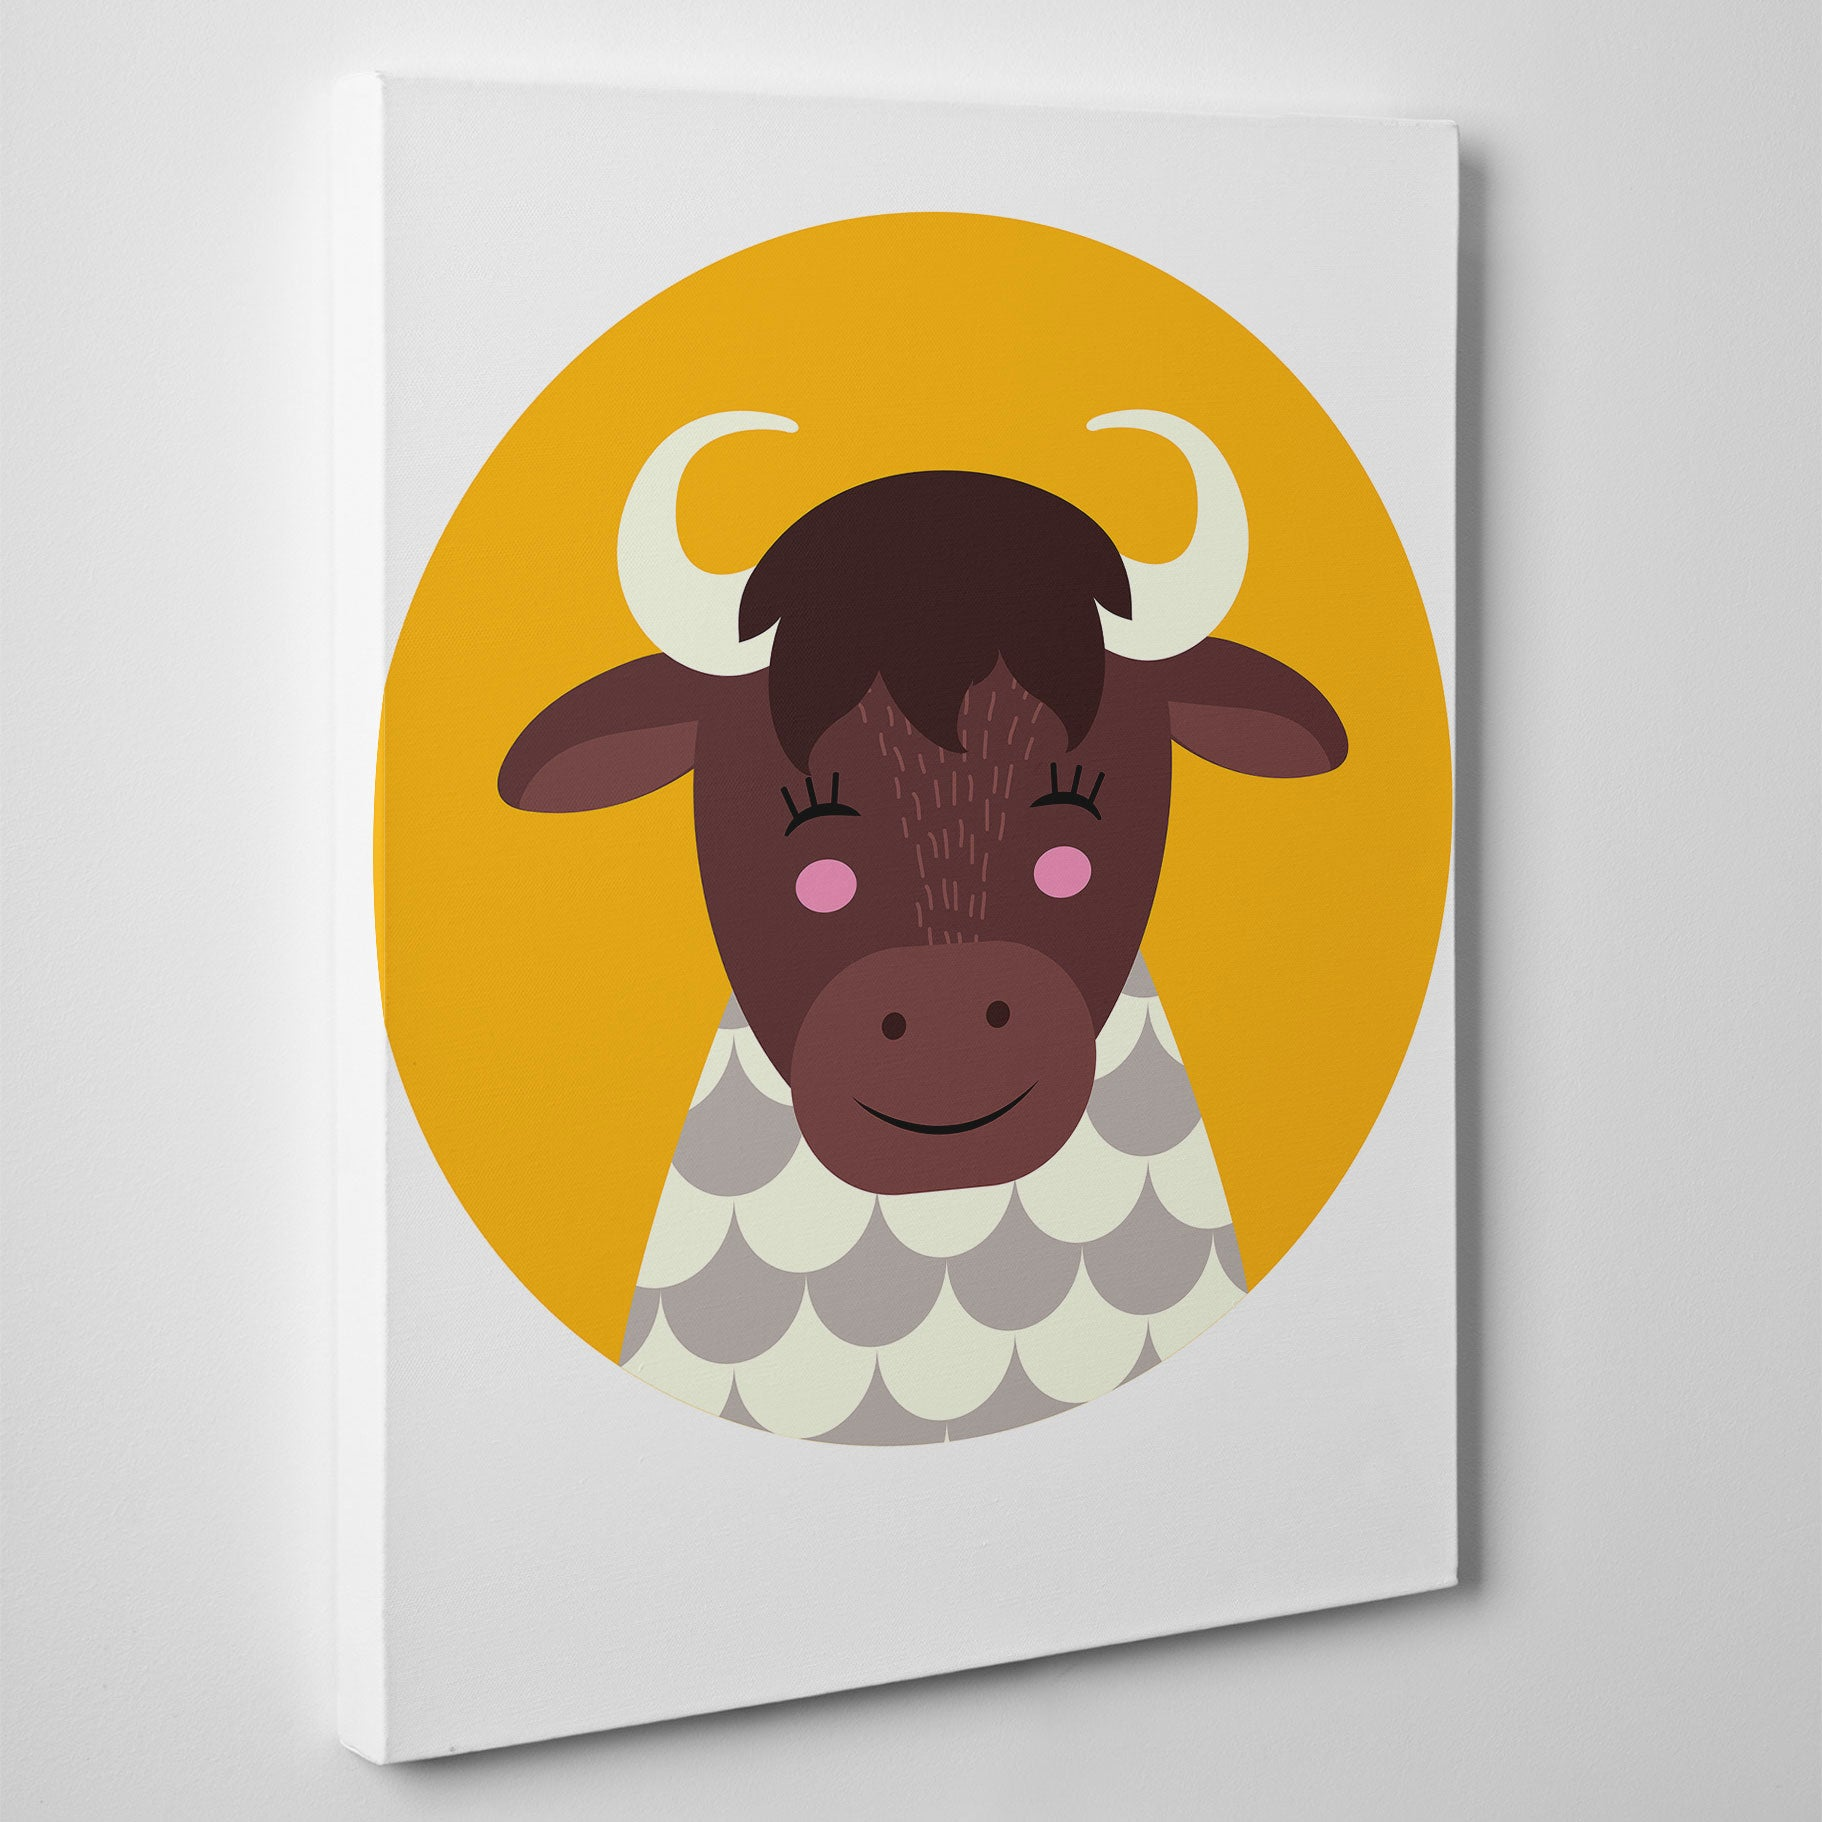 Nursery canvas print with a smiley cow in a yellow circle - side view